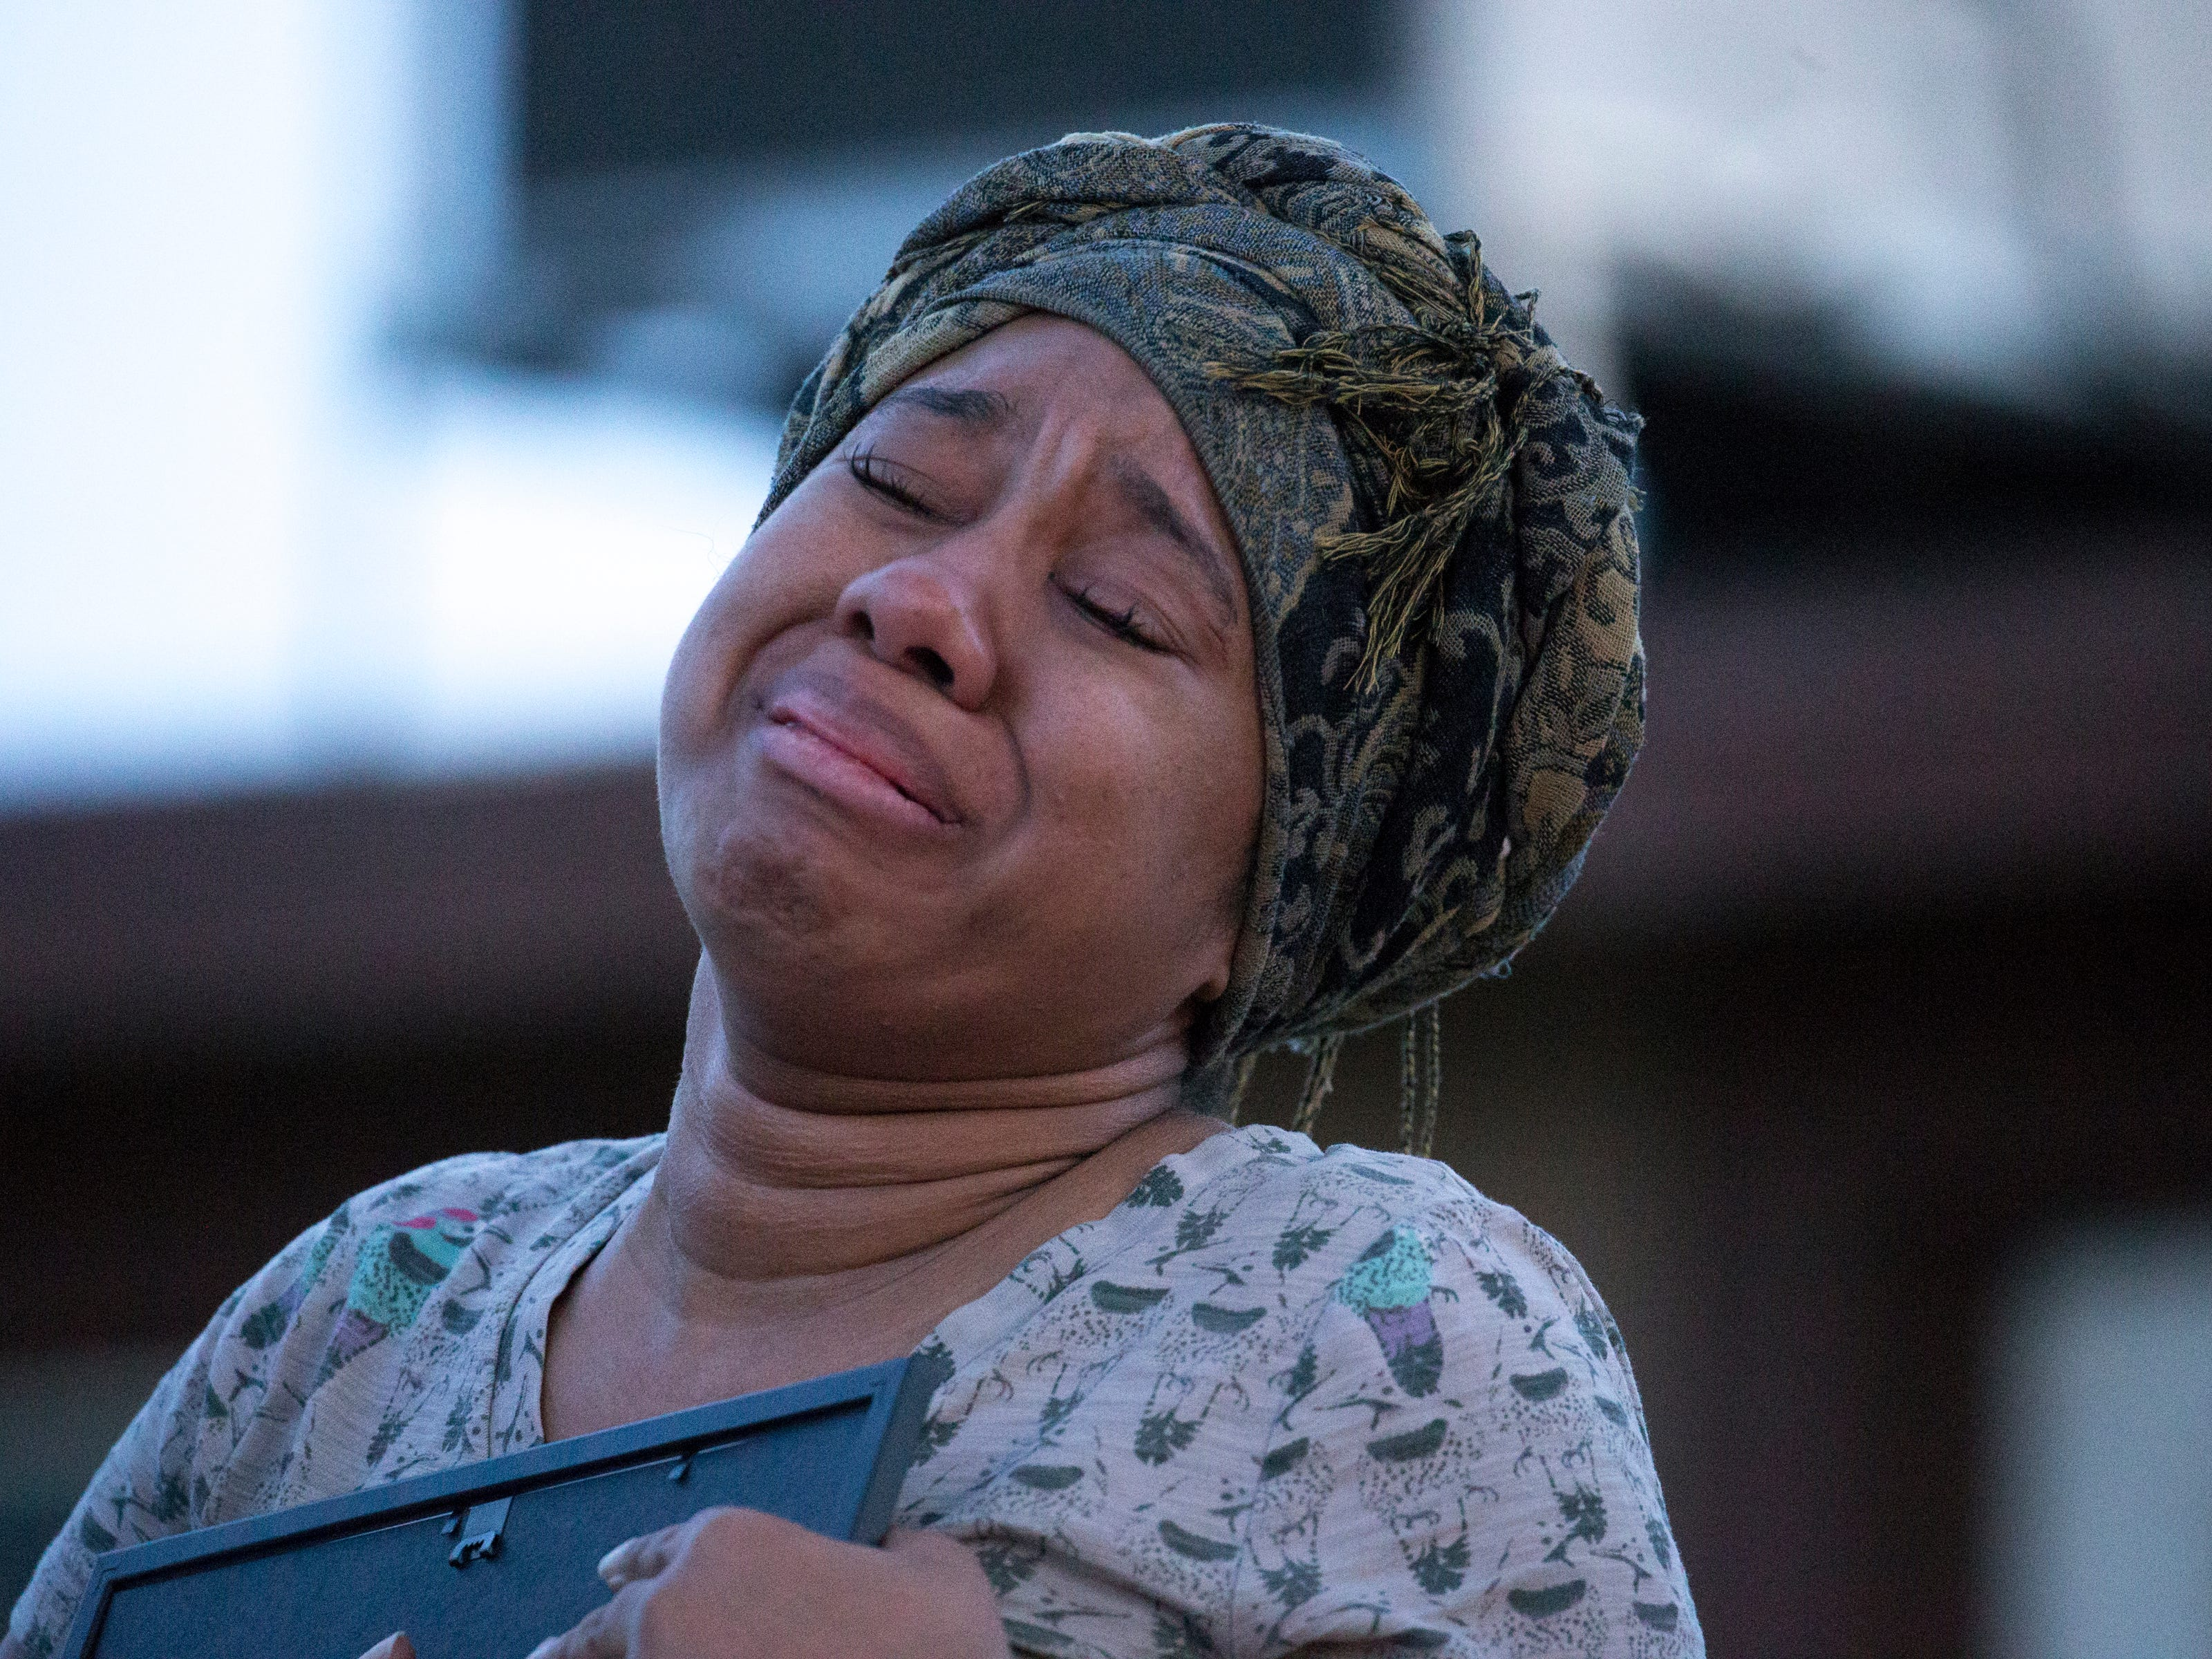 Taniesha Brown (right, Summer's mom) is overcome with emotion after Rebecka Johnson (Summer's 5th grade teacher) gave her Summer's last art assignment during a vigil for Summer Bell Brown on April 5, 2019. Summer was shot in the driveway of her home and later died from her injuries in a suspected road-rage incident.